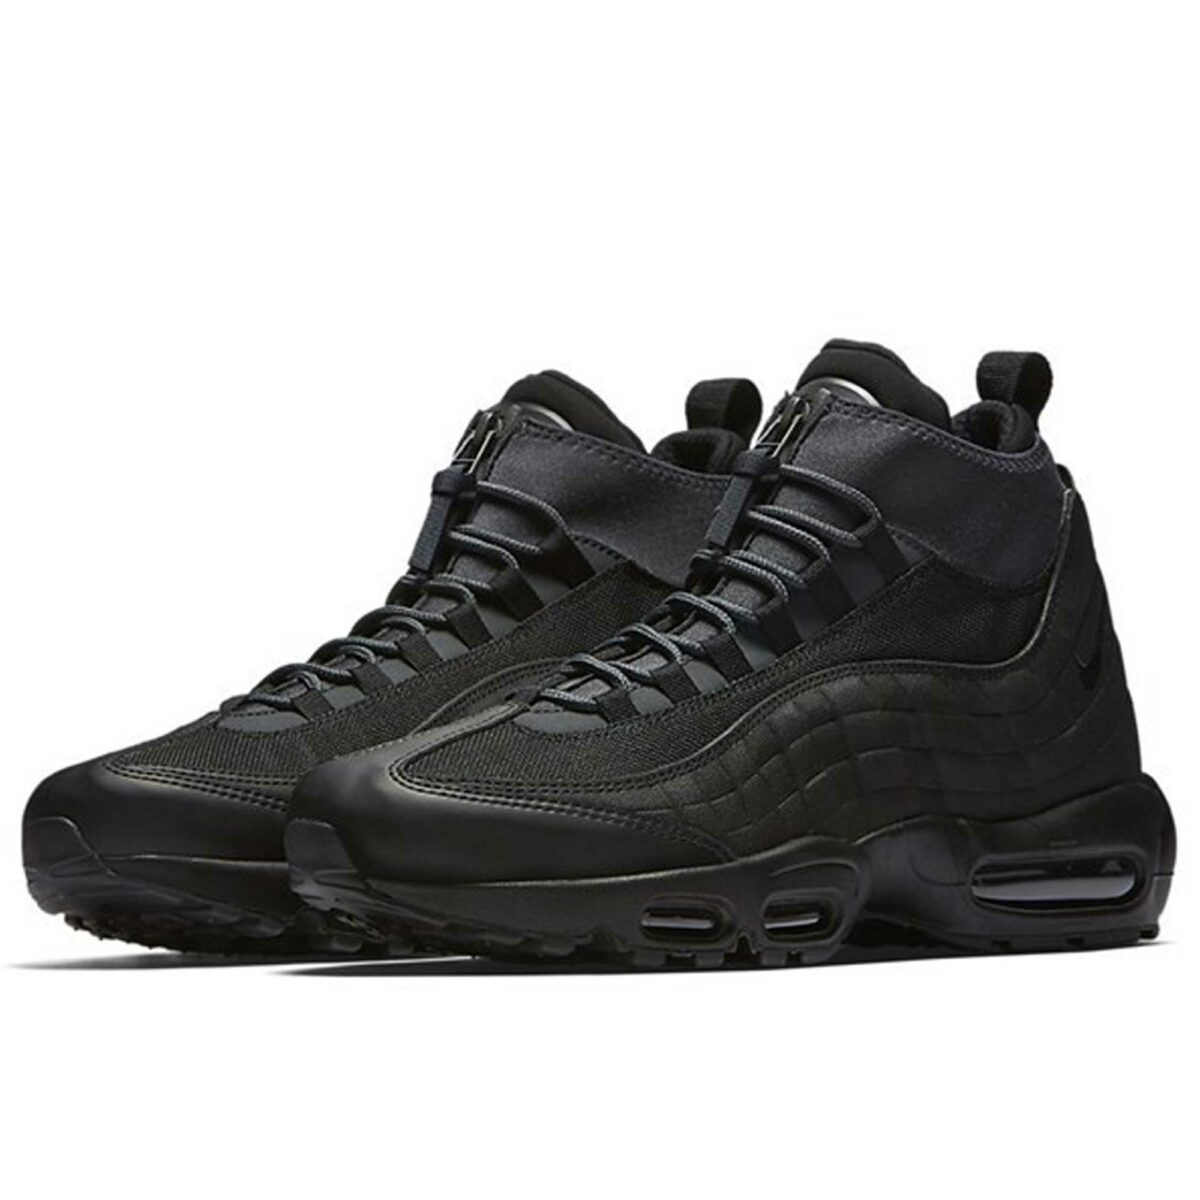 nike air max 95 sneakerboot black 806809_001 купить